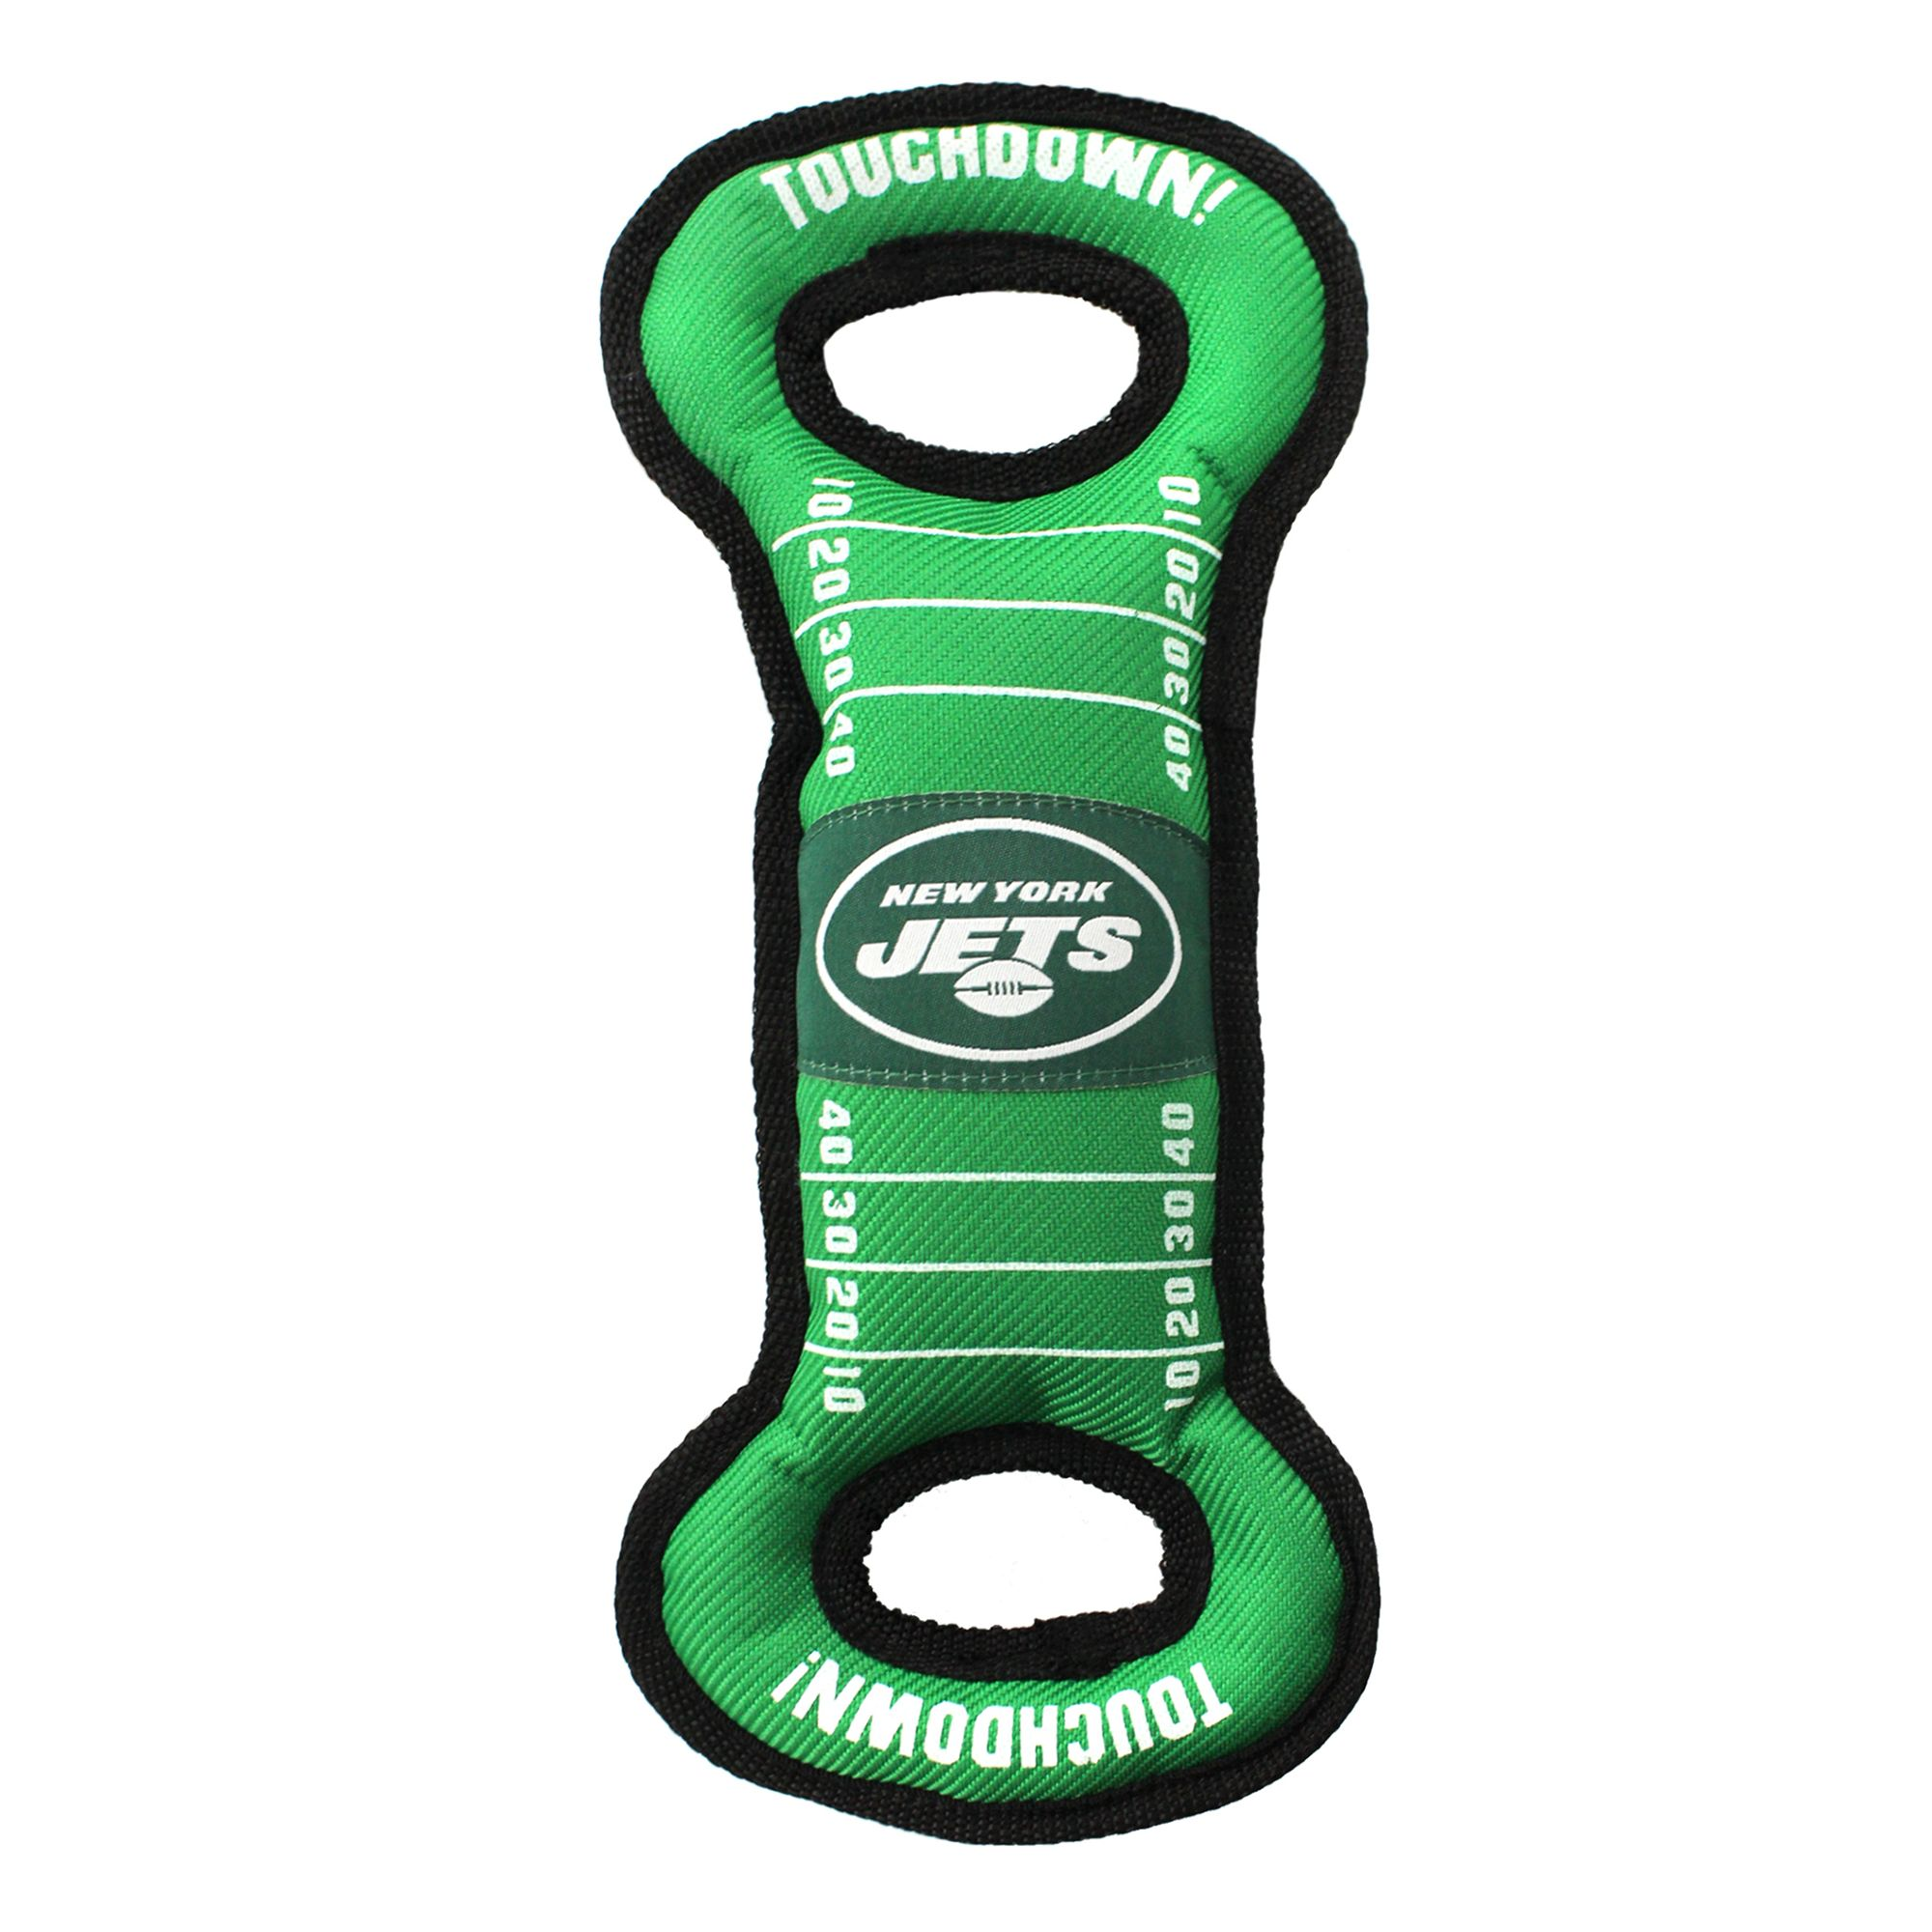 New York Jets NFL Field Dog Toy, Pets First 5234289